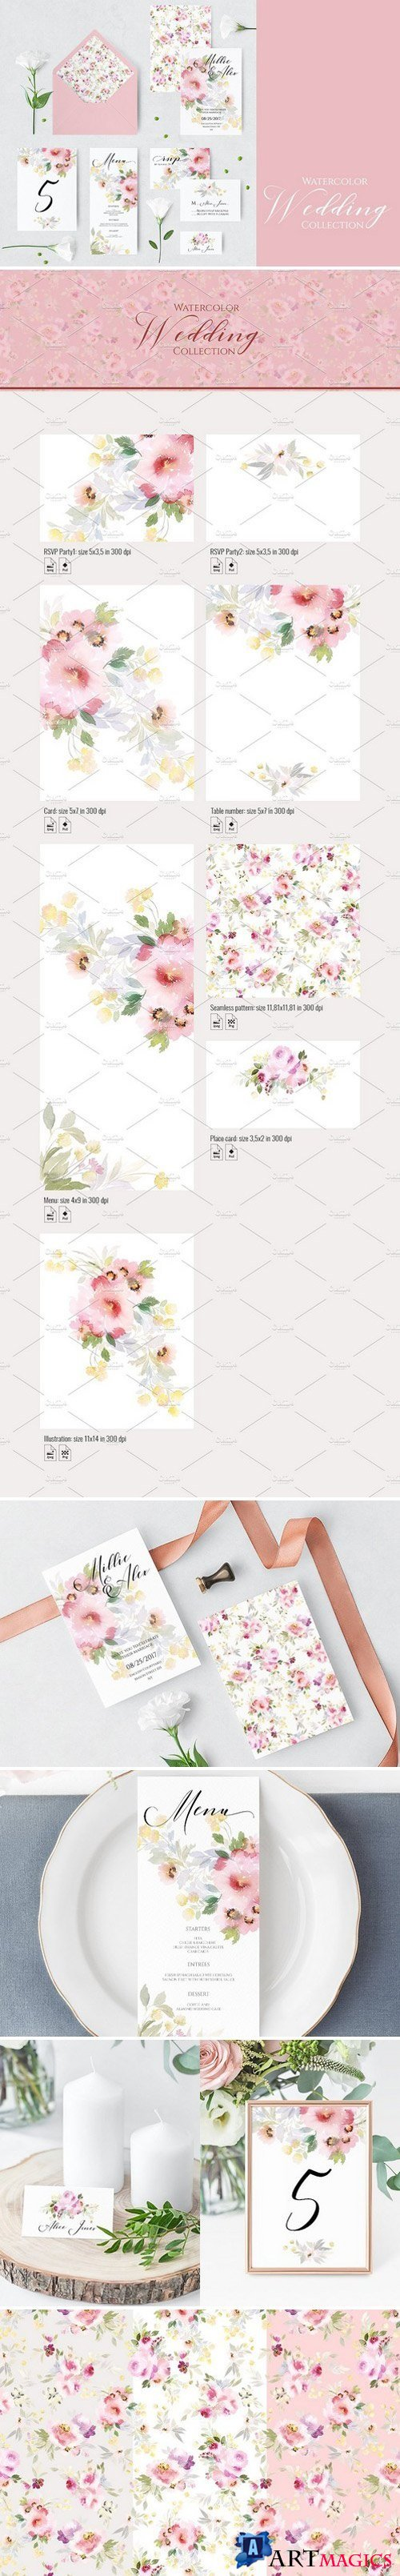 Floral wedding invitations 2223975